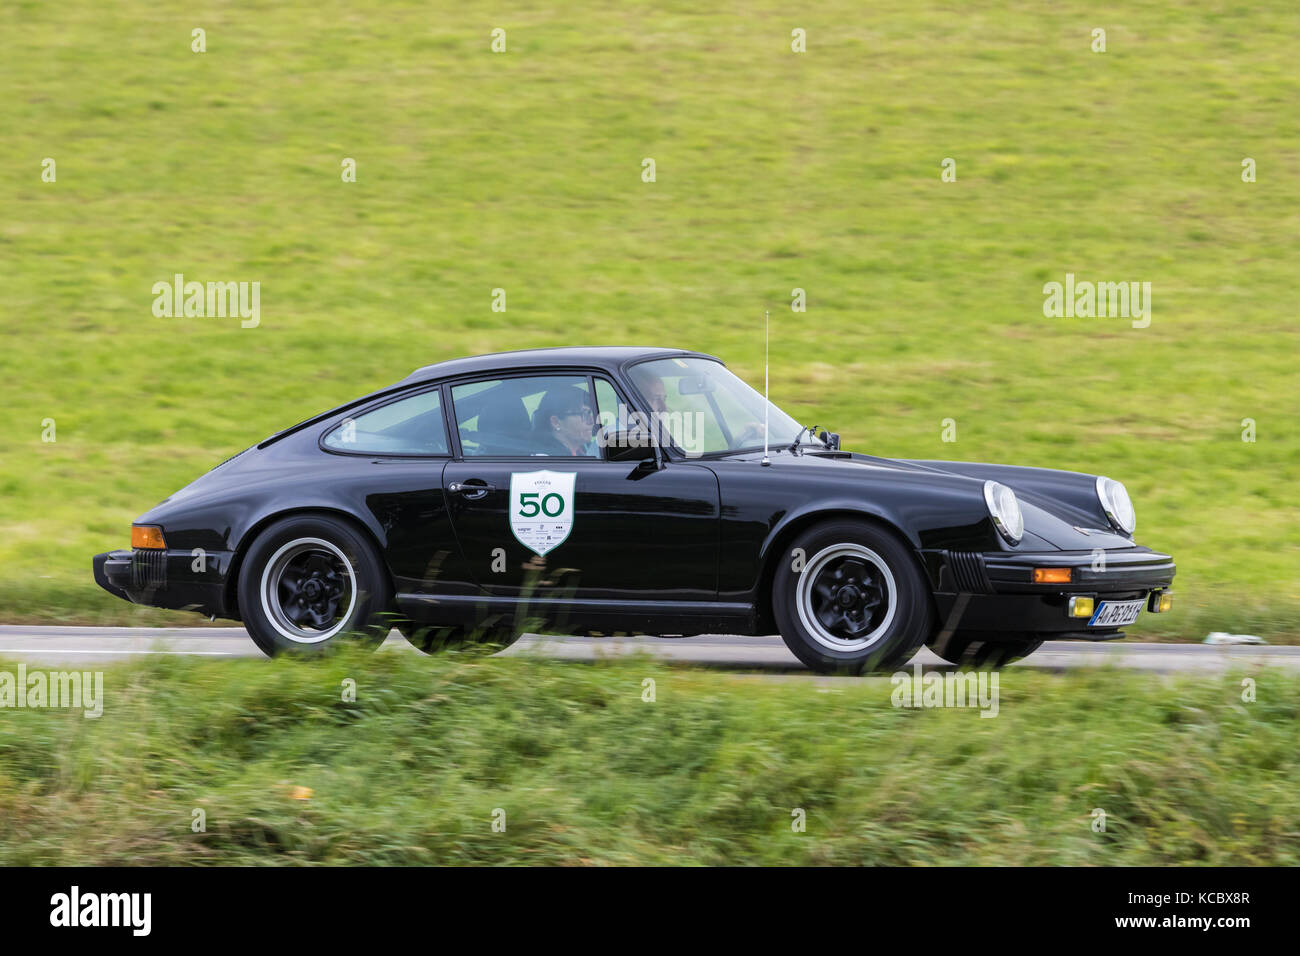 porsche 911 s stock photos porsche 911 s stock images alamy. Black Bedroom Furniture Sets. Home Design Ideas